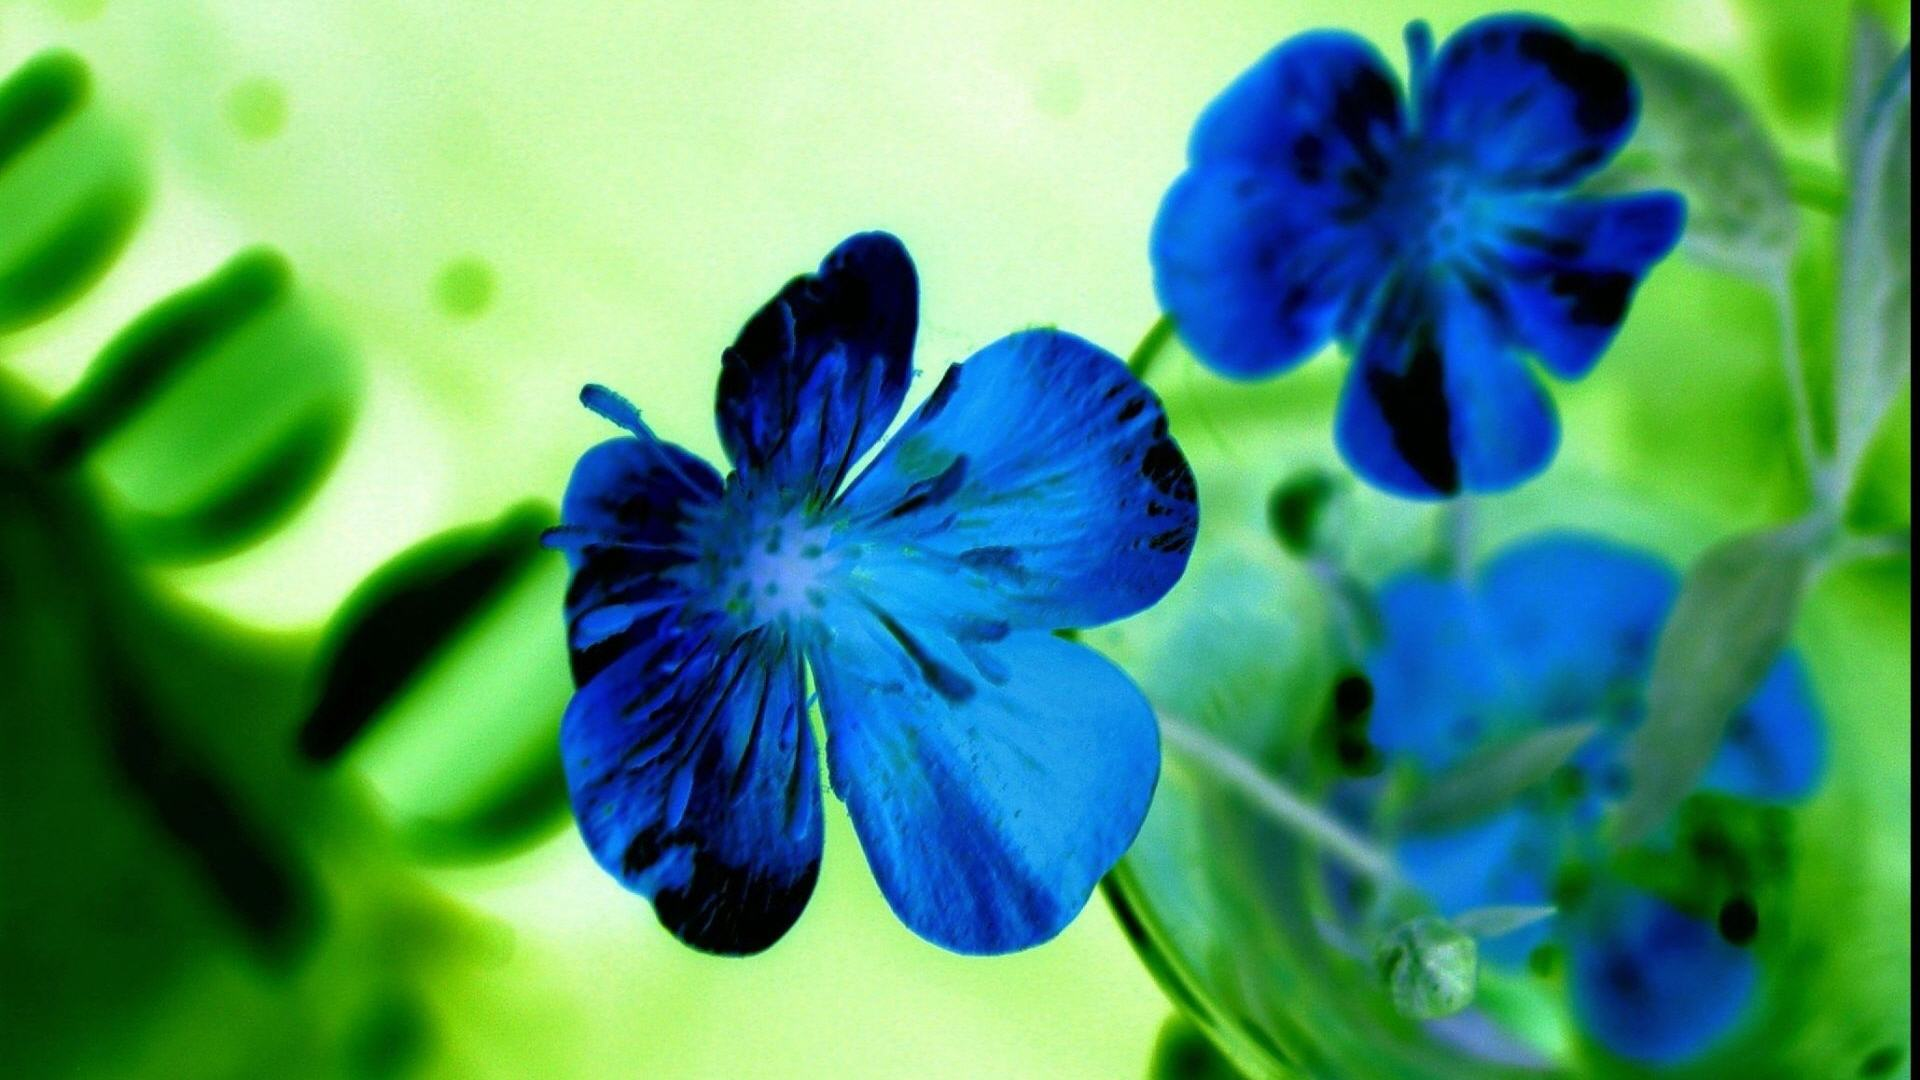 blue-flower-wide-hd-wallpaper-download-blue-flower-images-free